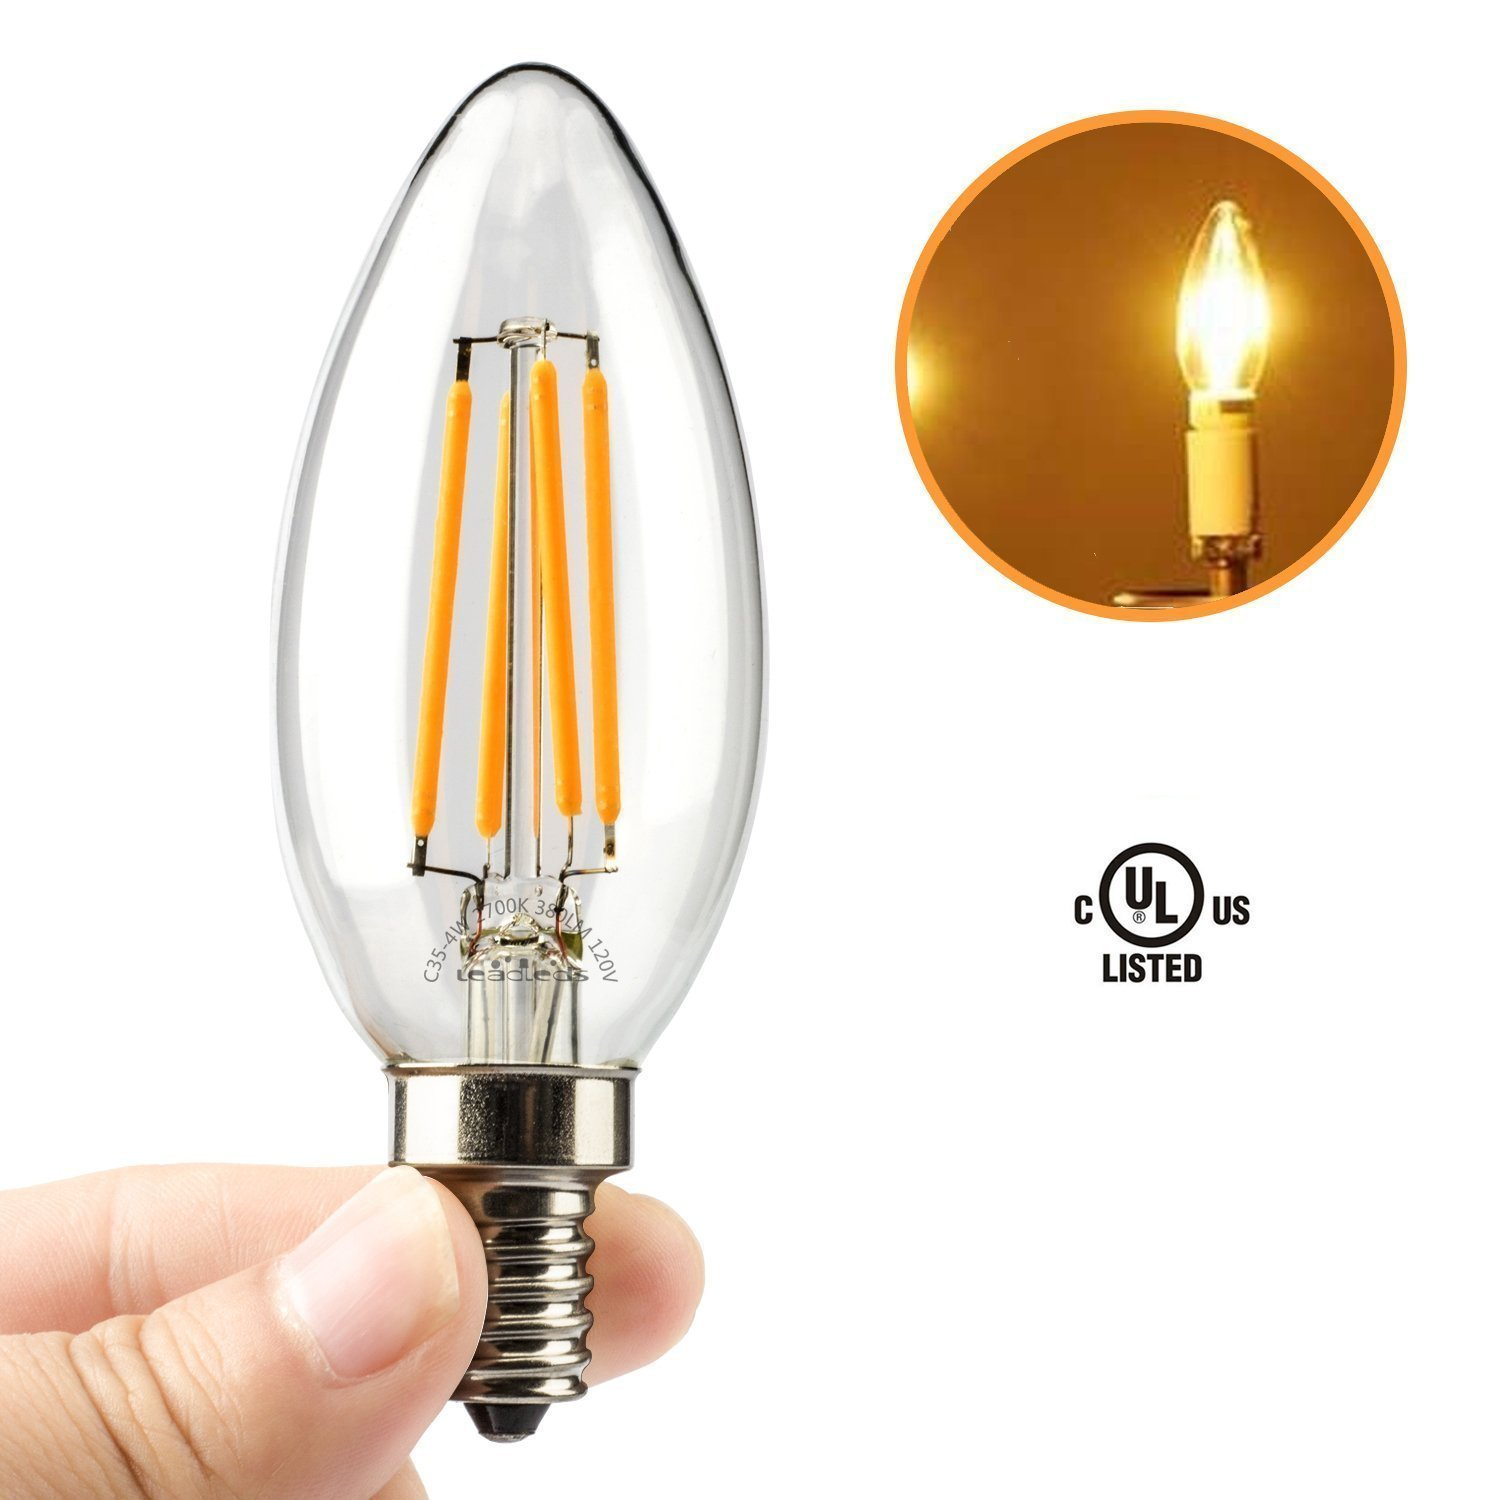 Surprising chandelier light bulbs energy saving photos simple amazon com leadleds 4w candelabra led bulb 40 watt equivalent energy efficient arubaitofo Gallery